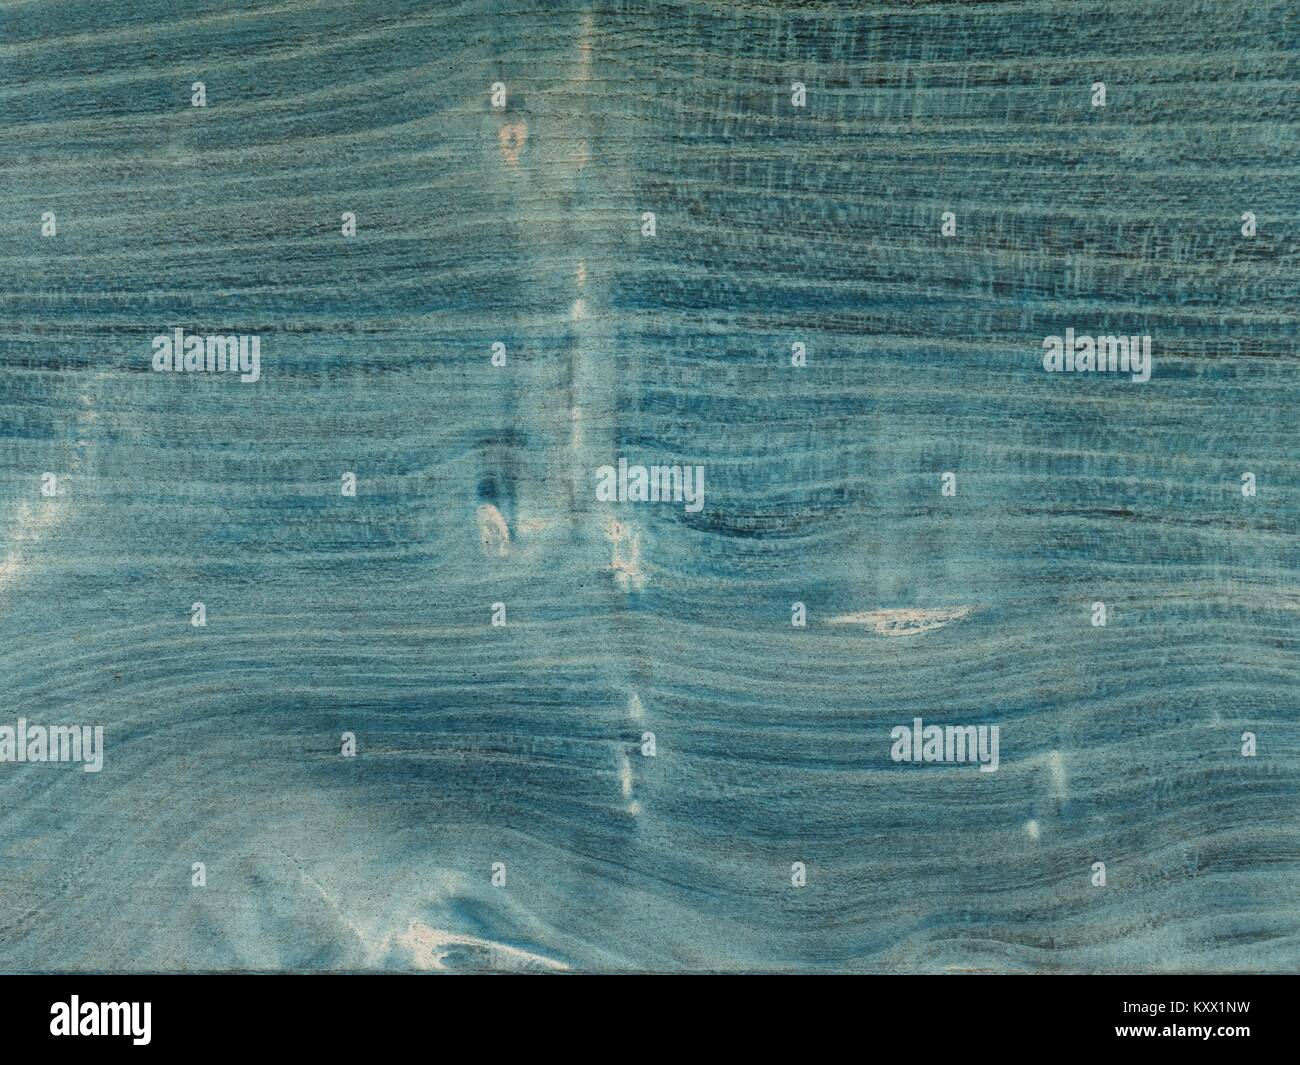 Aged wooden planks  with gentle texture  of annual rings. Wooden surface moored into navy blue color, - Stock Image